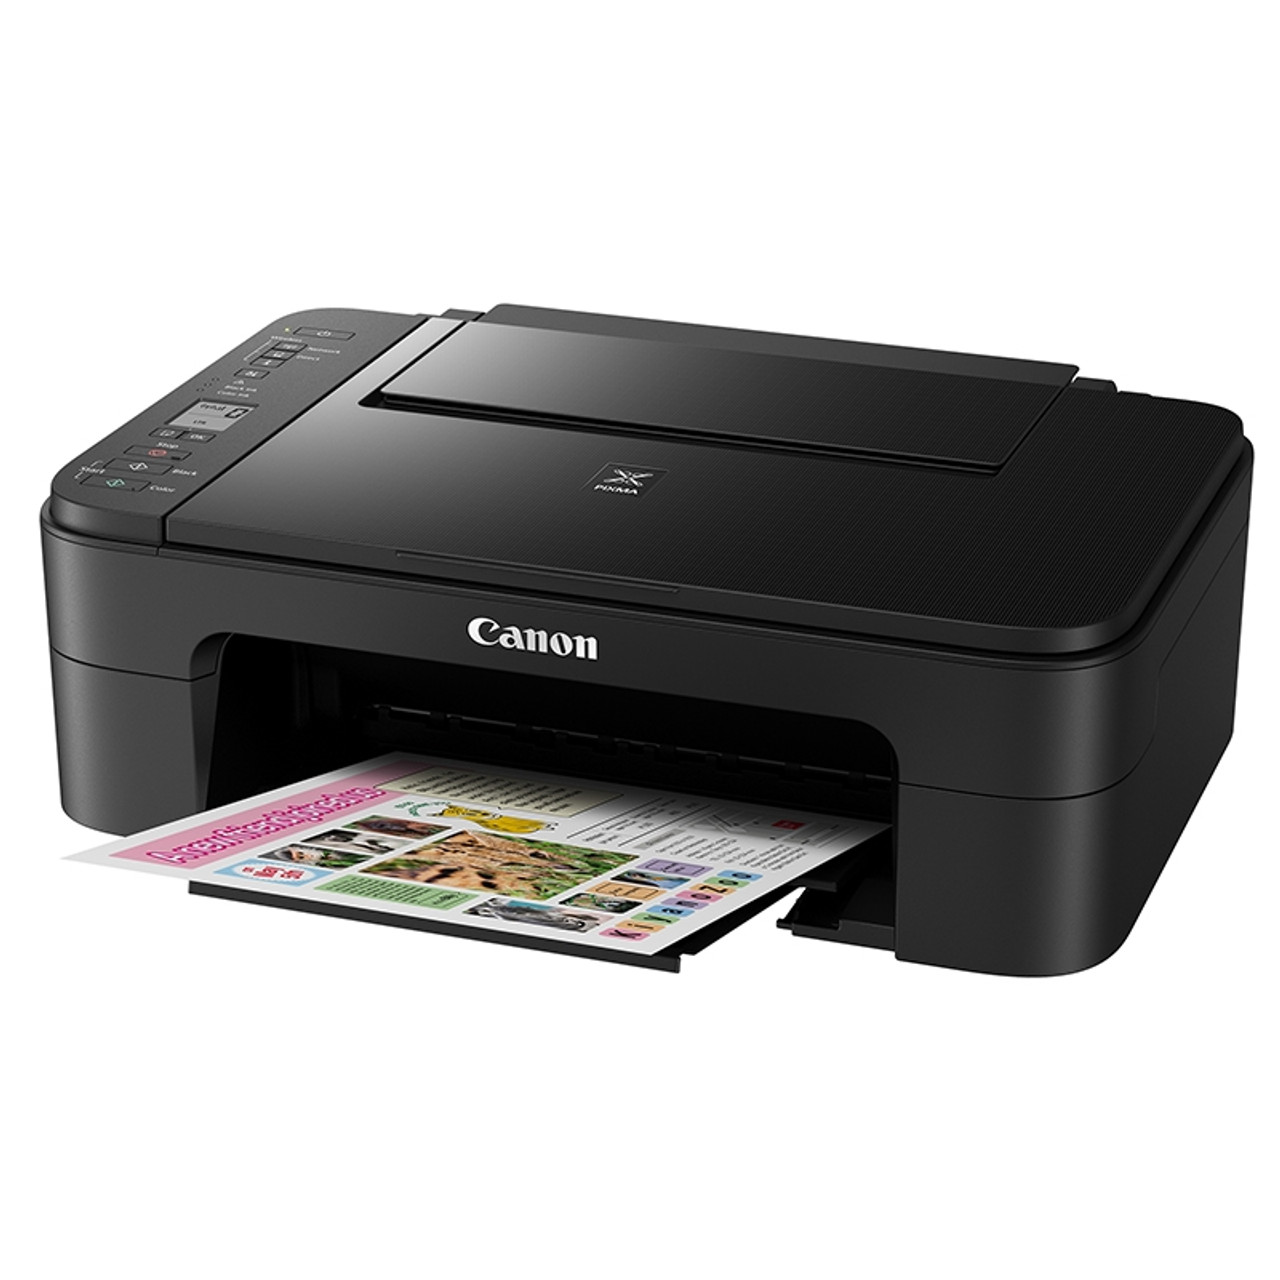 Product image for Canon Pixma Home TS3160 A4 Colour Multifunction Wireless Inkjet Printer - Black | CX Computer Superstore